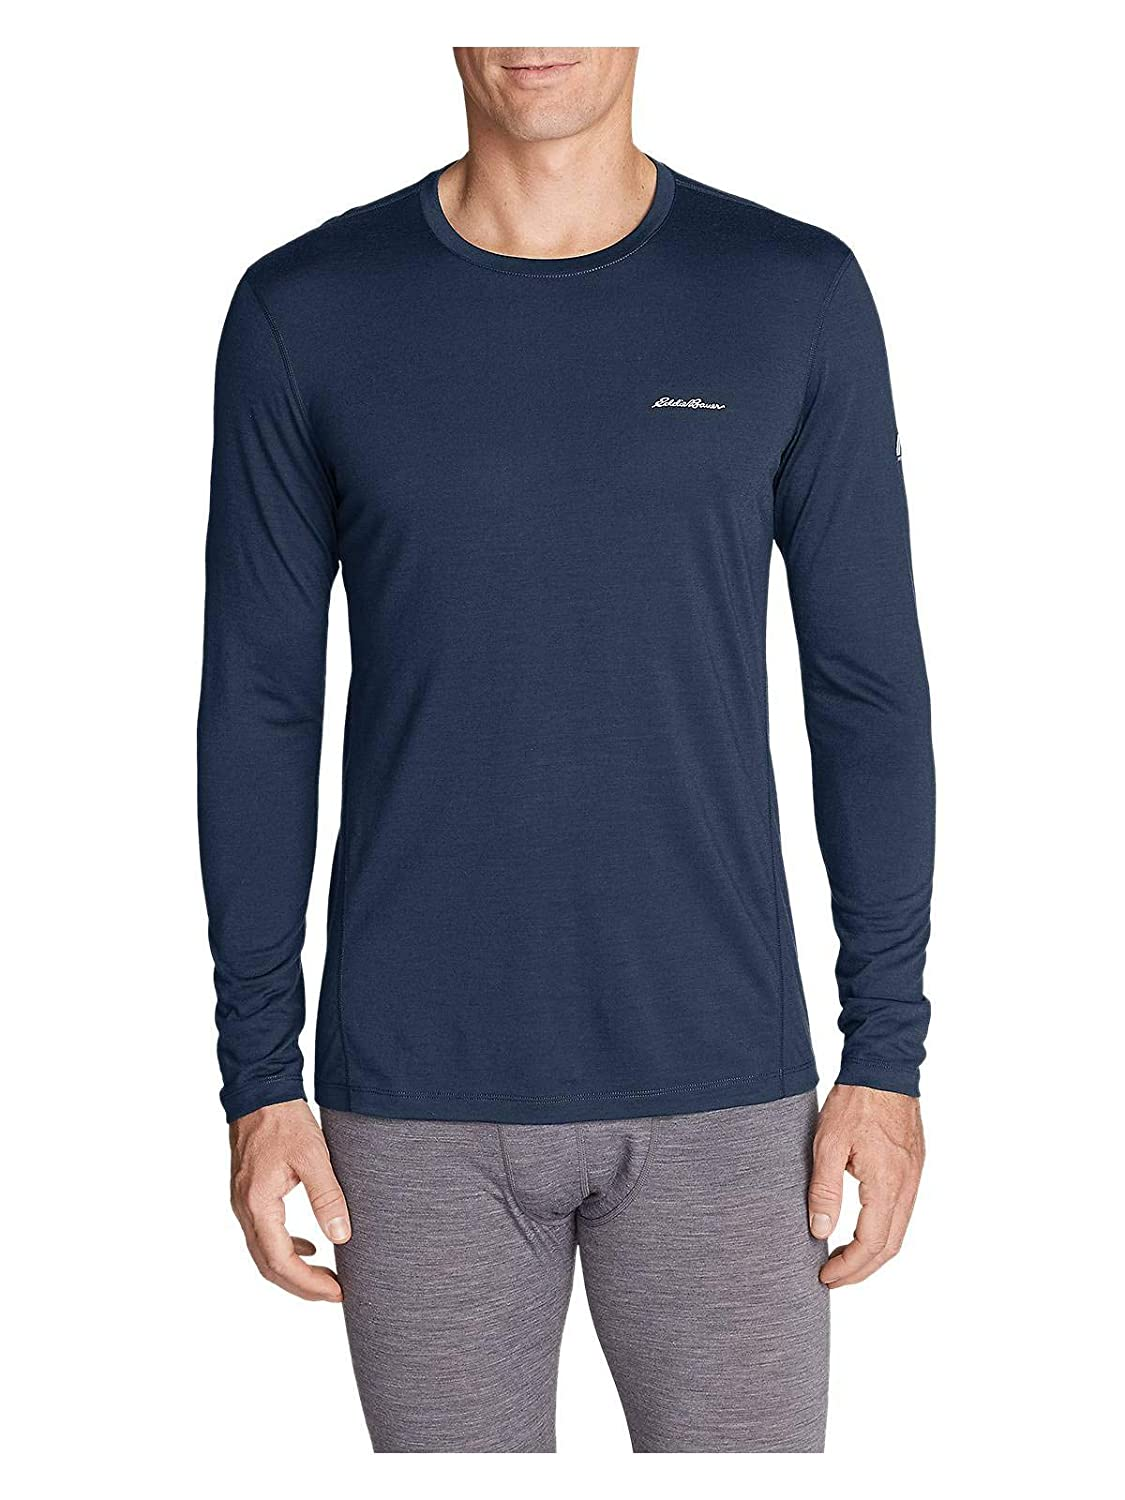 Eddie Bauer Mens Midweight FreeDry Merino Hybrid Baselayer Long-Sleeve Crew 12950402